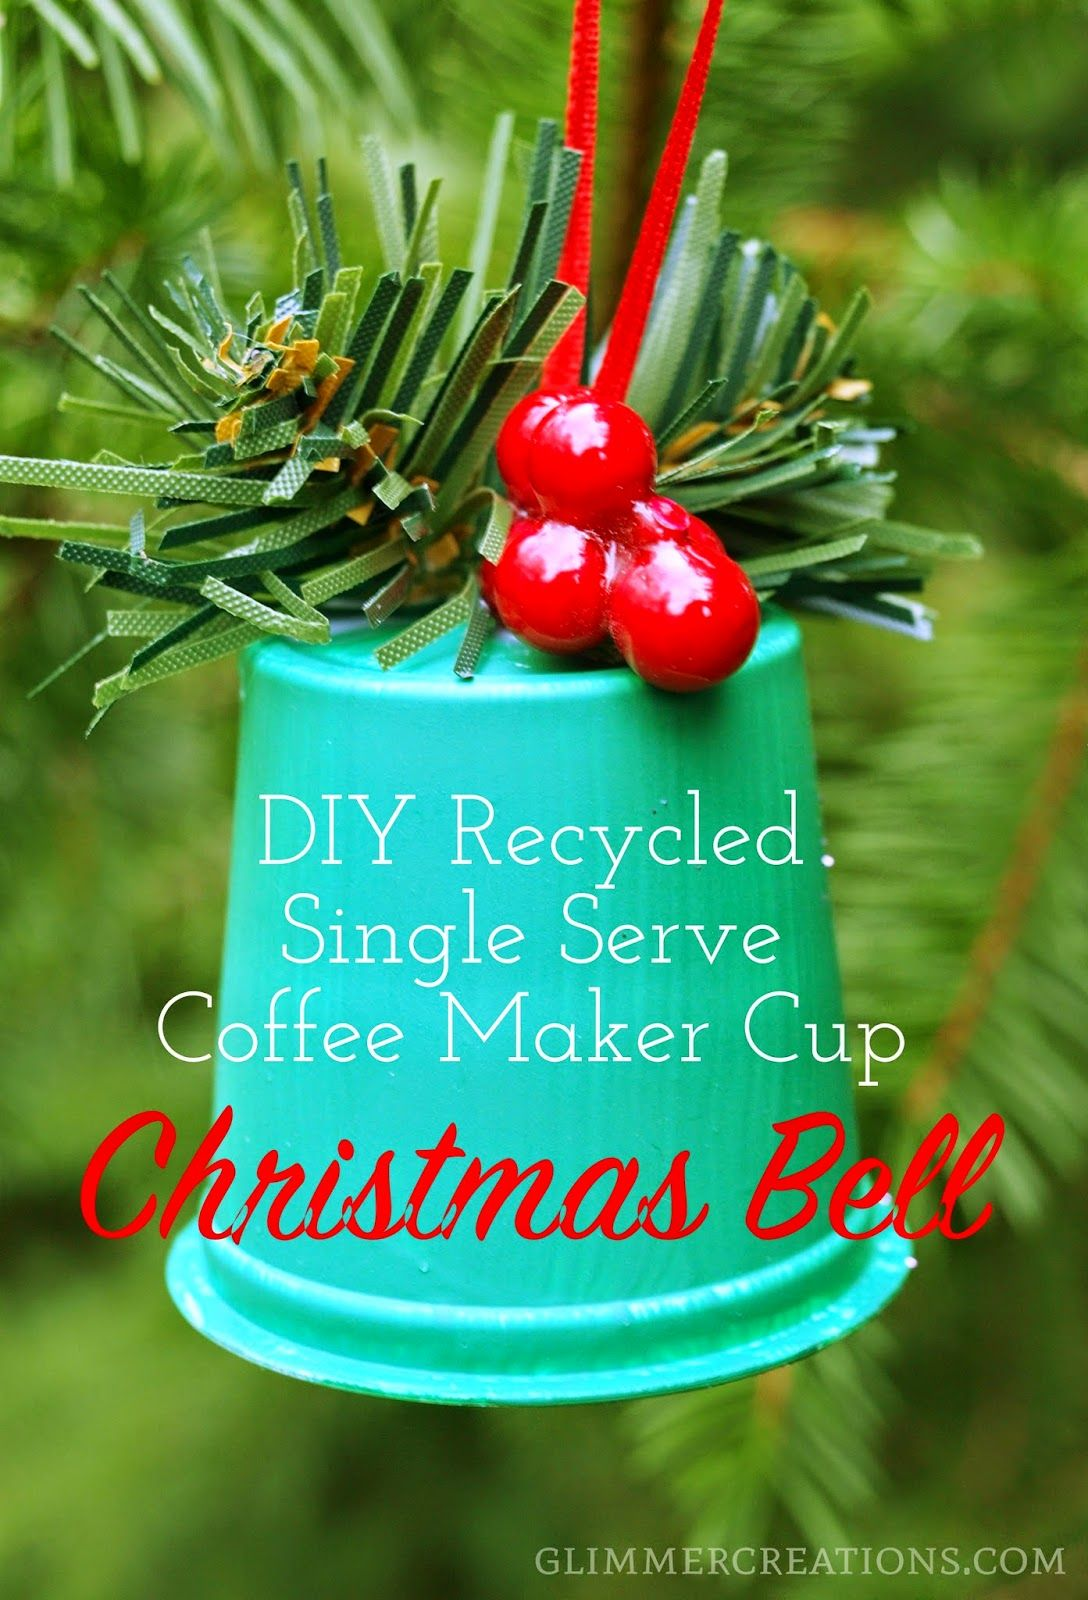 Recycled Single Serve Coffee Maker Cup Christmas Ornament Tutorial from www.glimmercreation ...